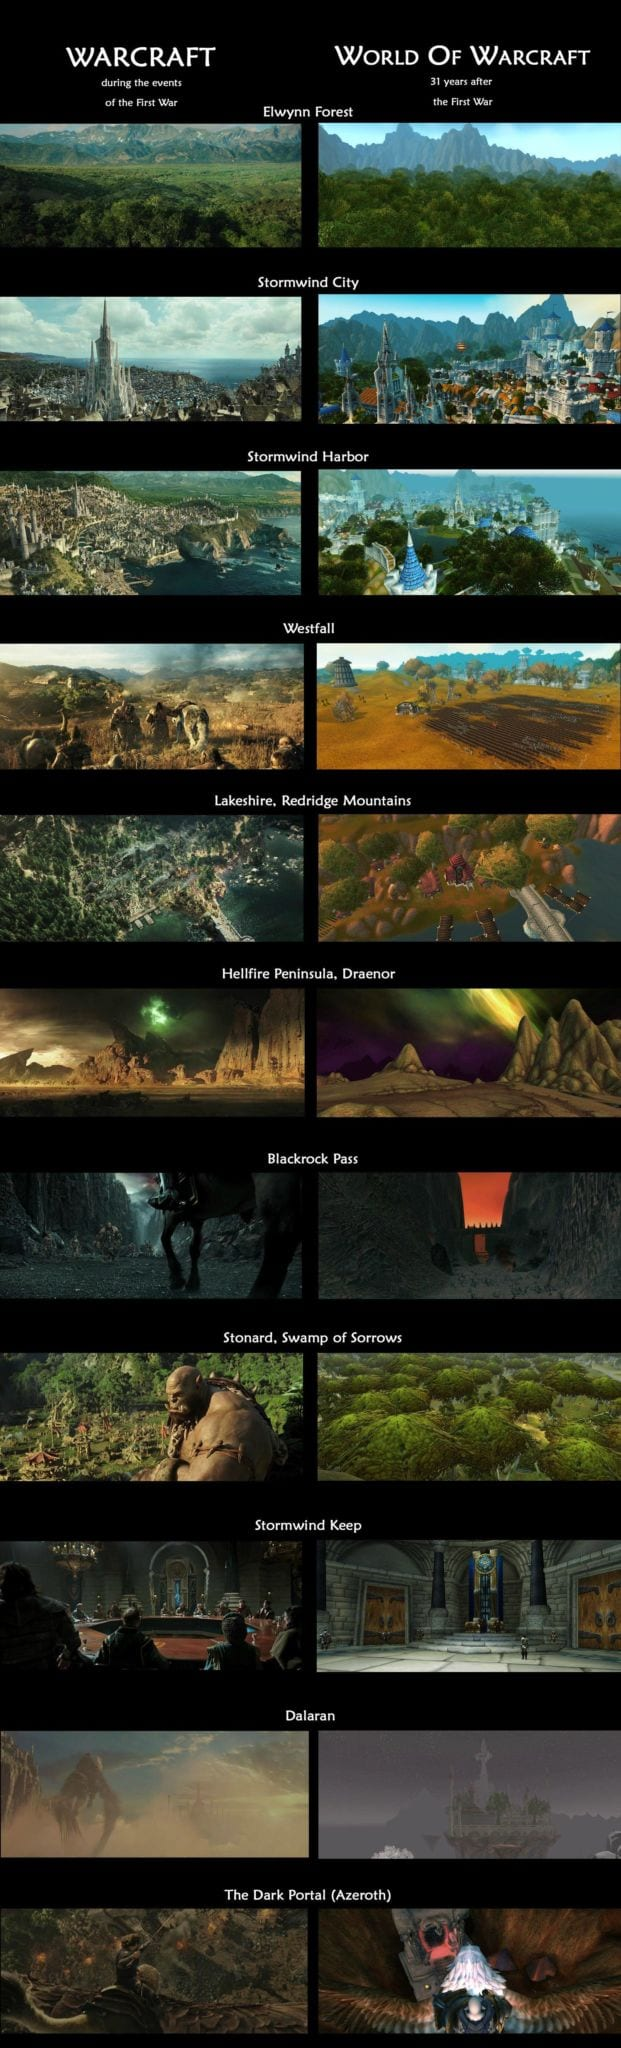 warcraft-the-movie-vs-world-of-warcraft